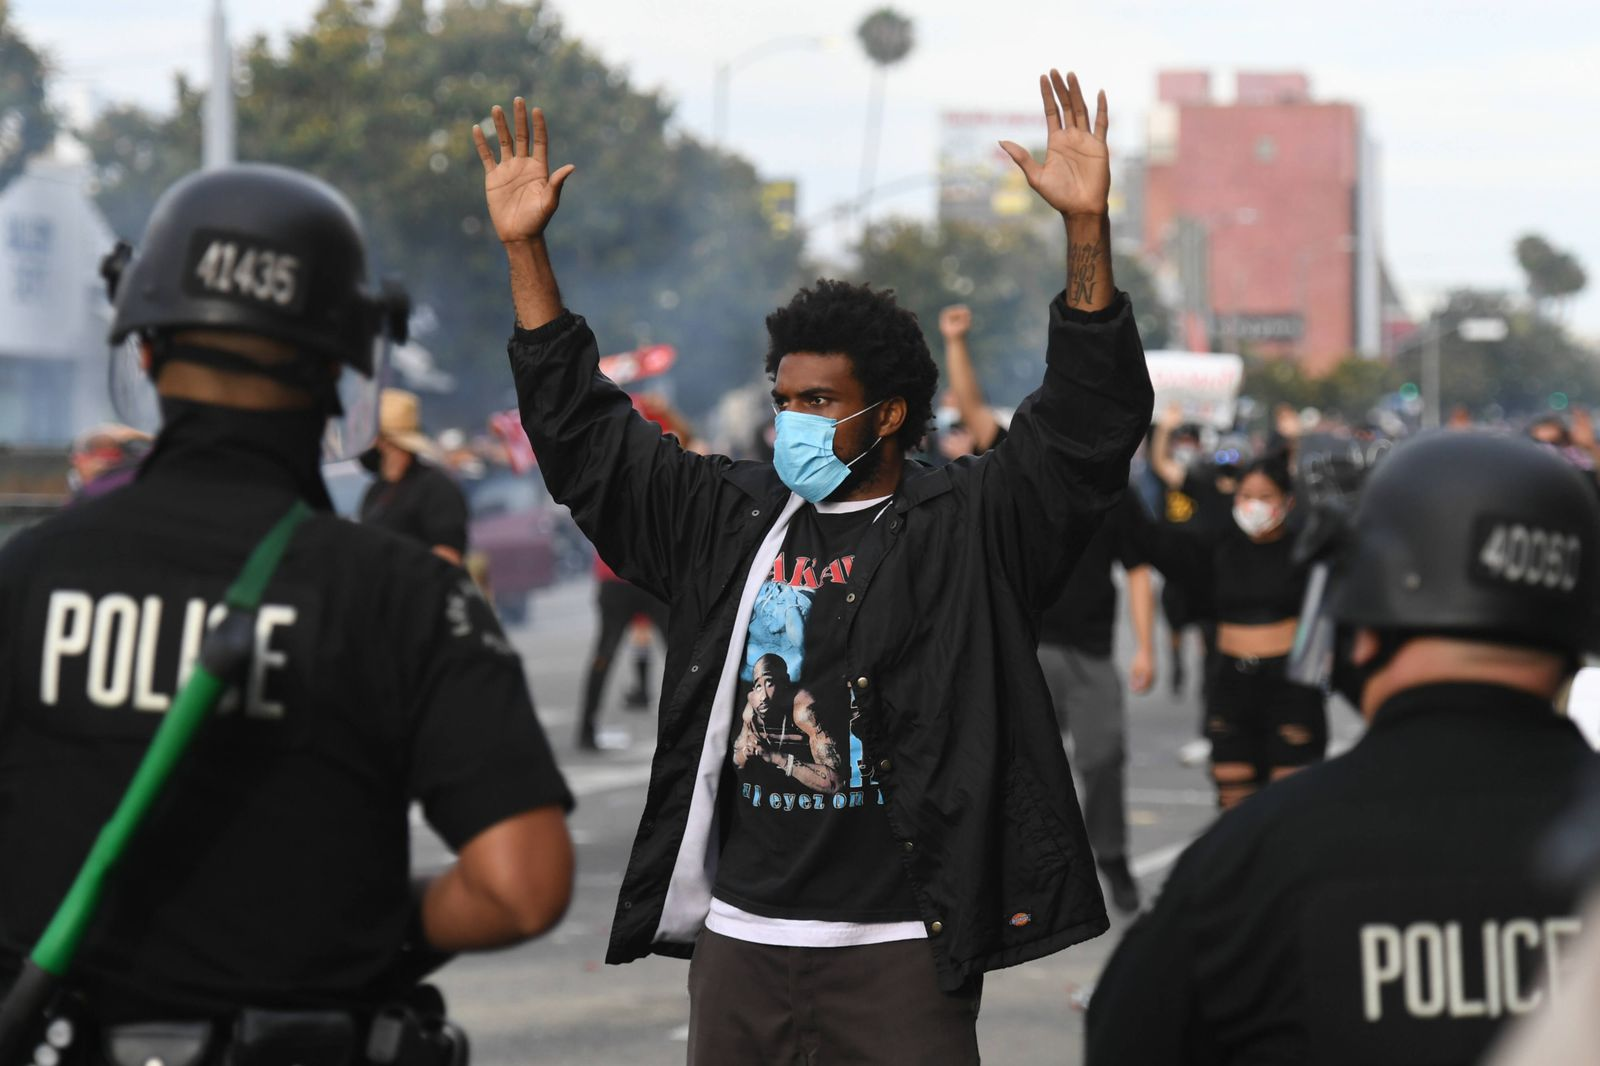 May 30, 2020, Los Angeles, California, USA: Protestors face off with police at Beverly near the Grove in Los Angeles, S